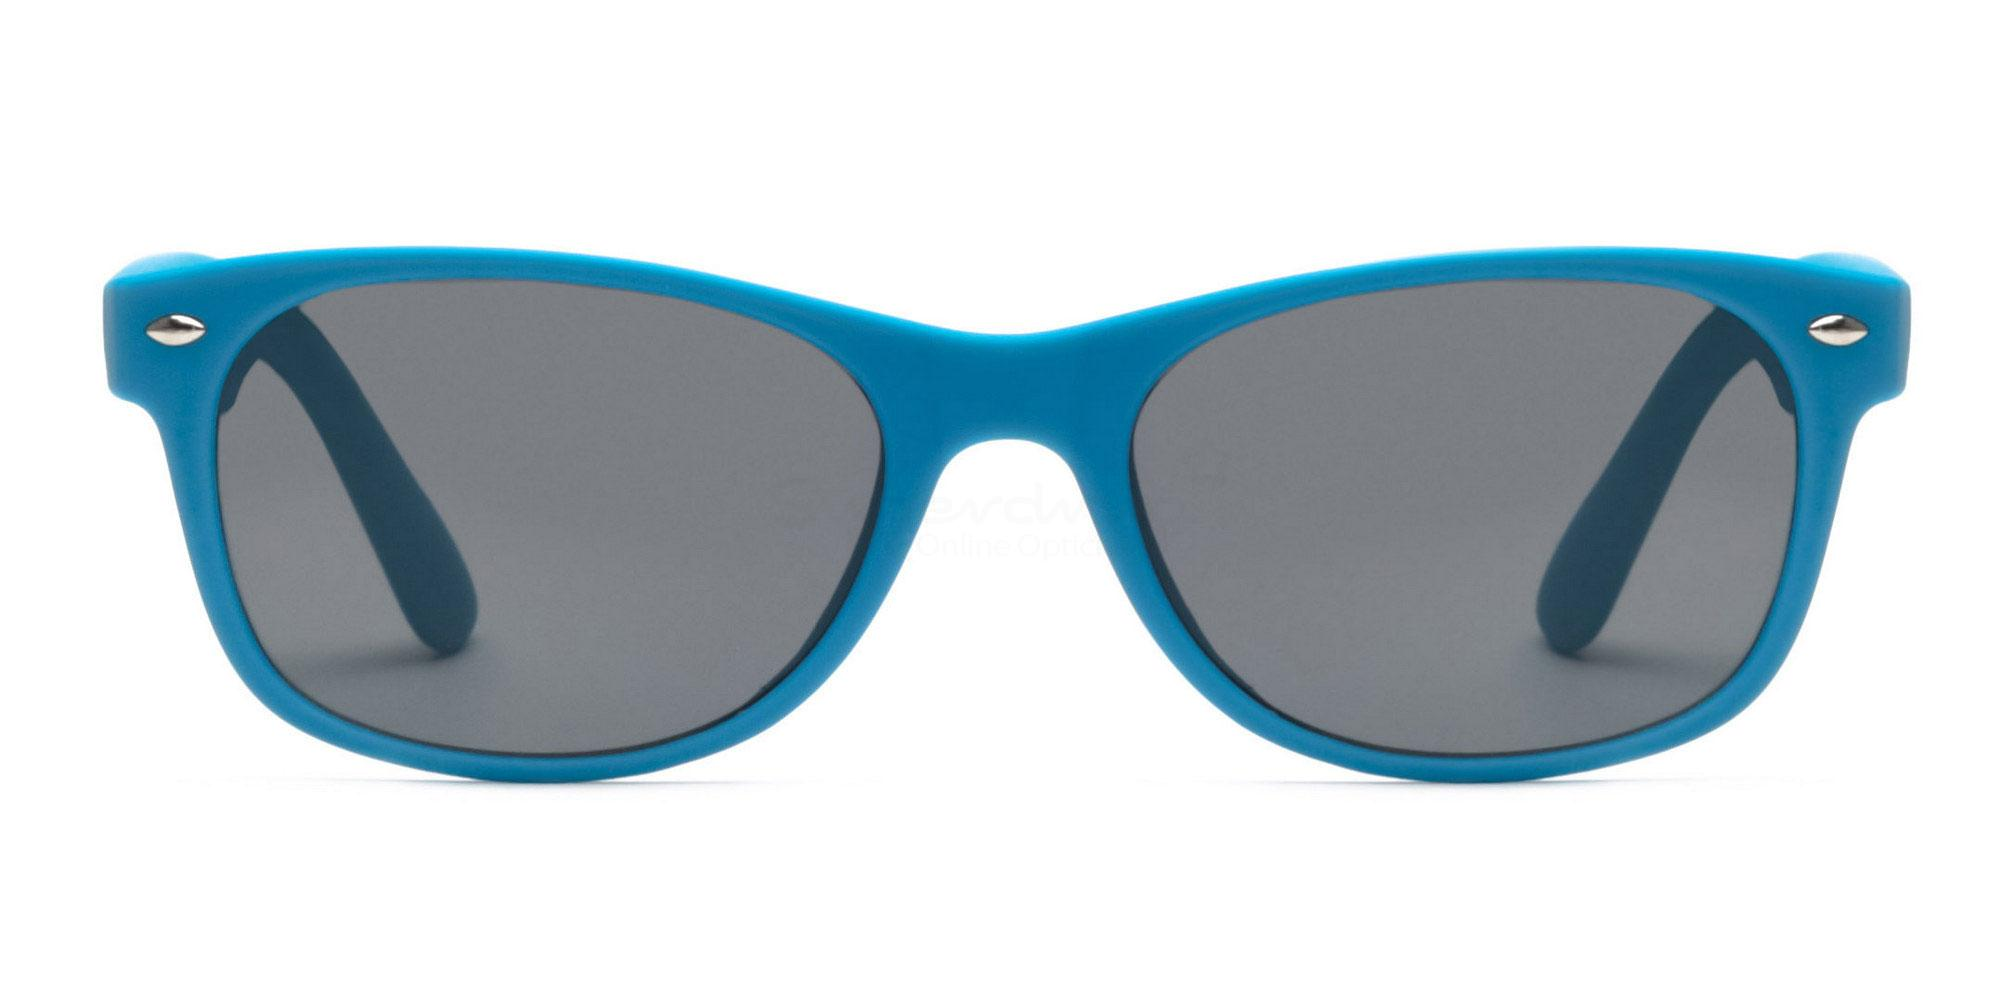 Light Blue S8122 - Light Blue (Sunglasses) Sunglasses, Helium